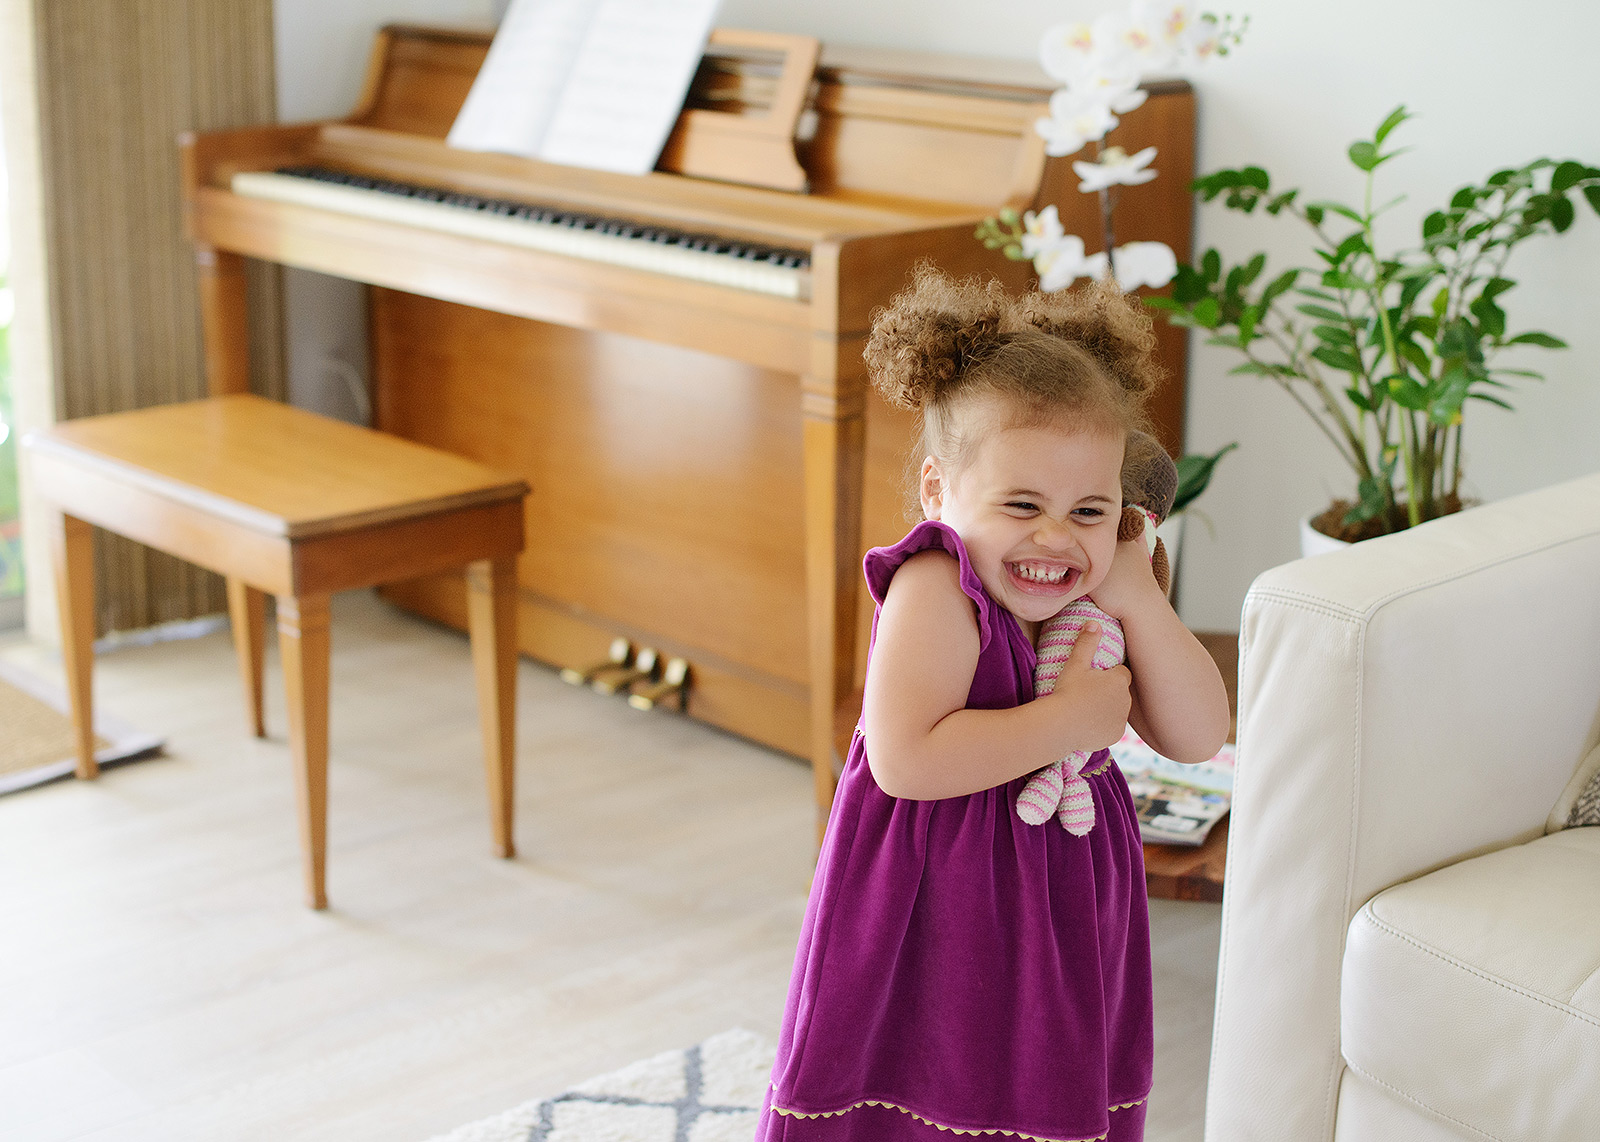 Toddler girl laughing and hugging toy with piano in background